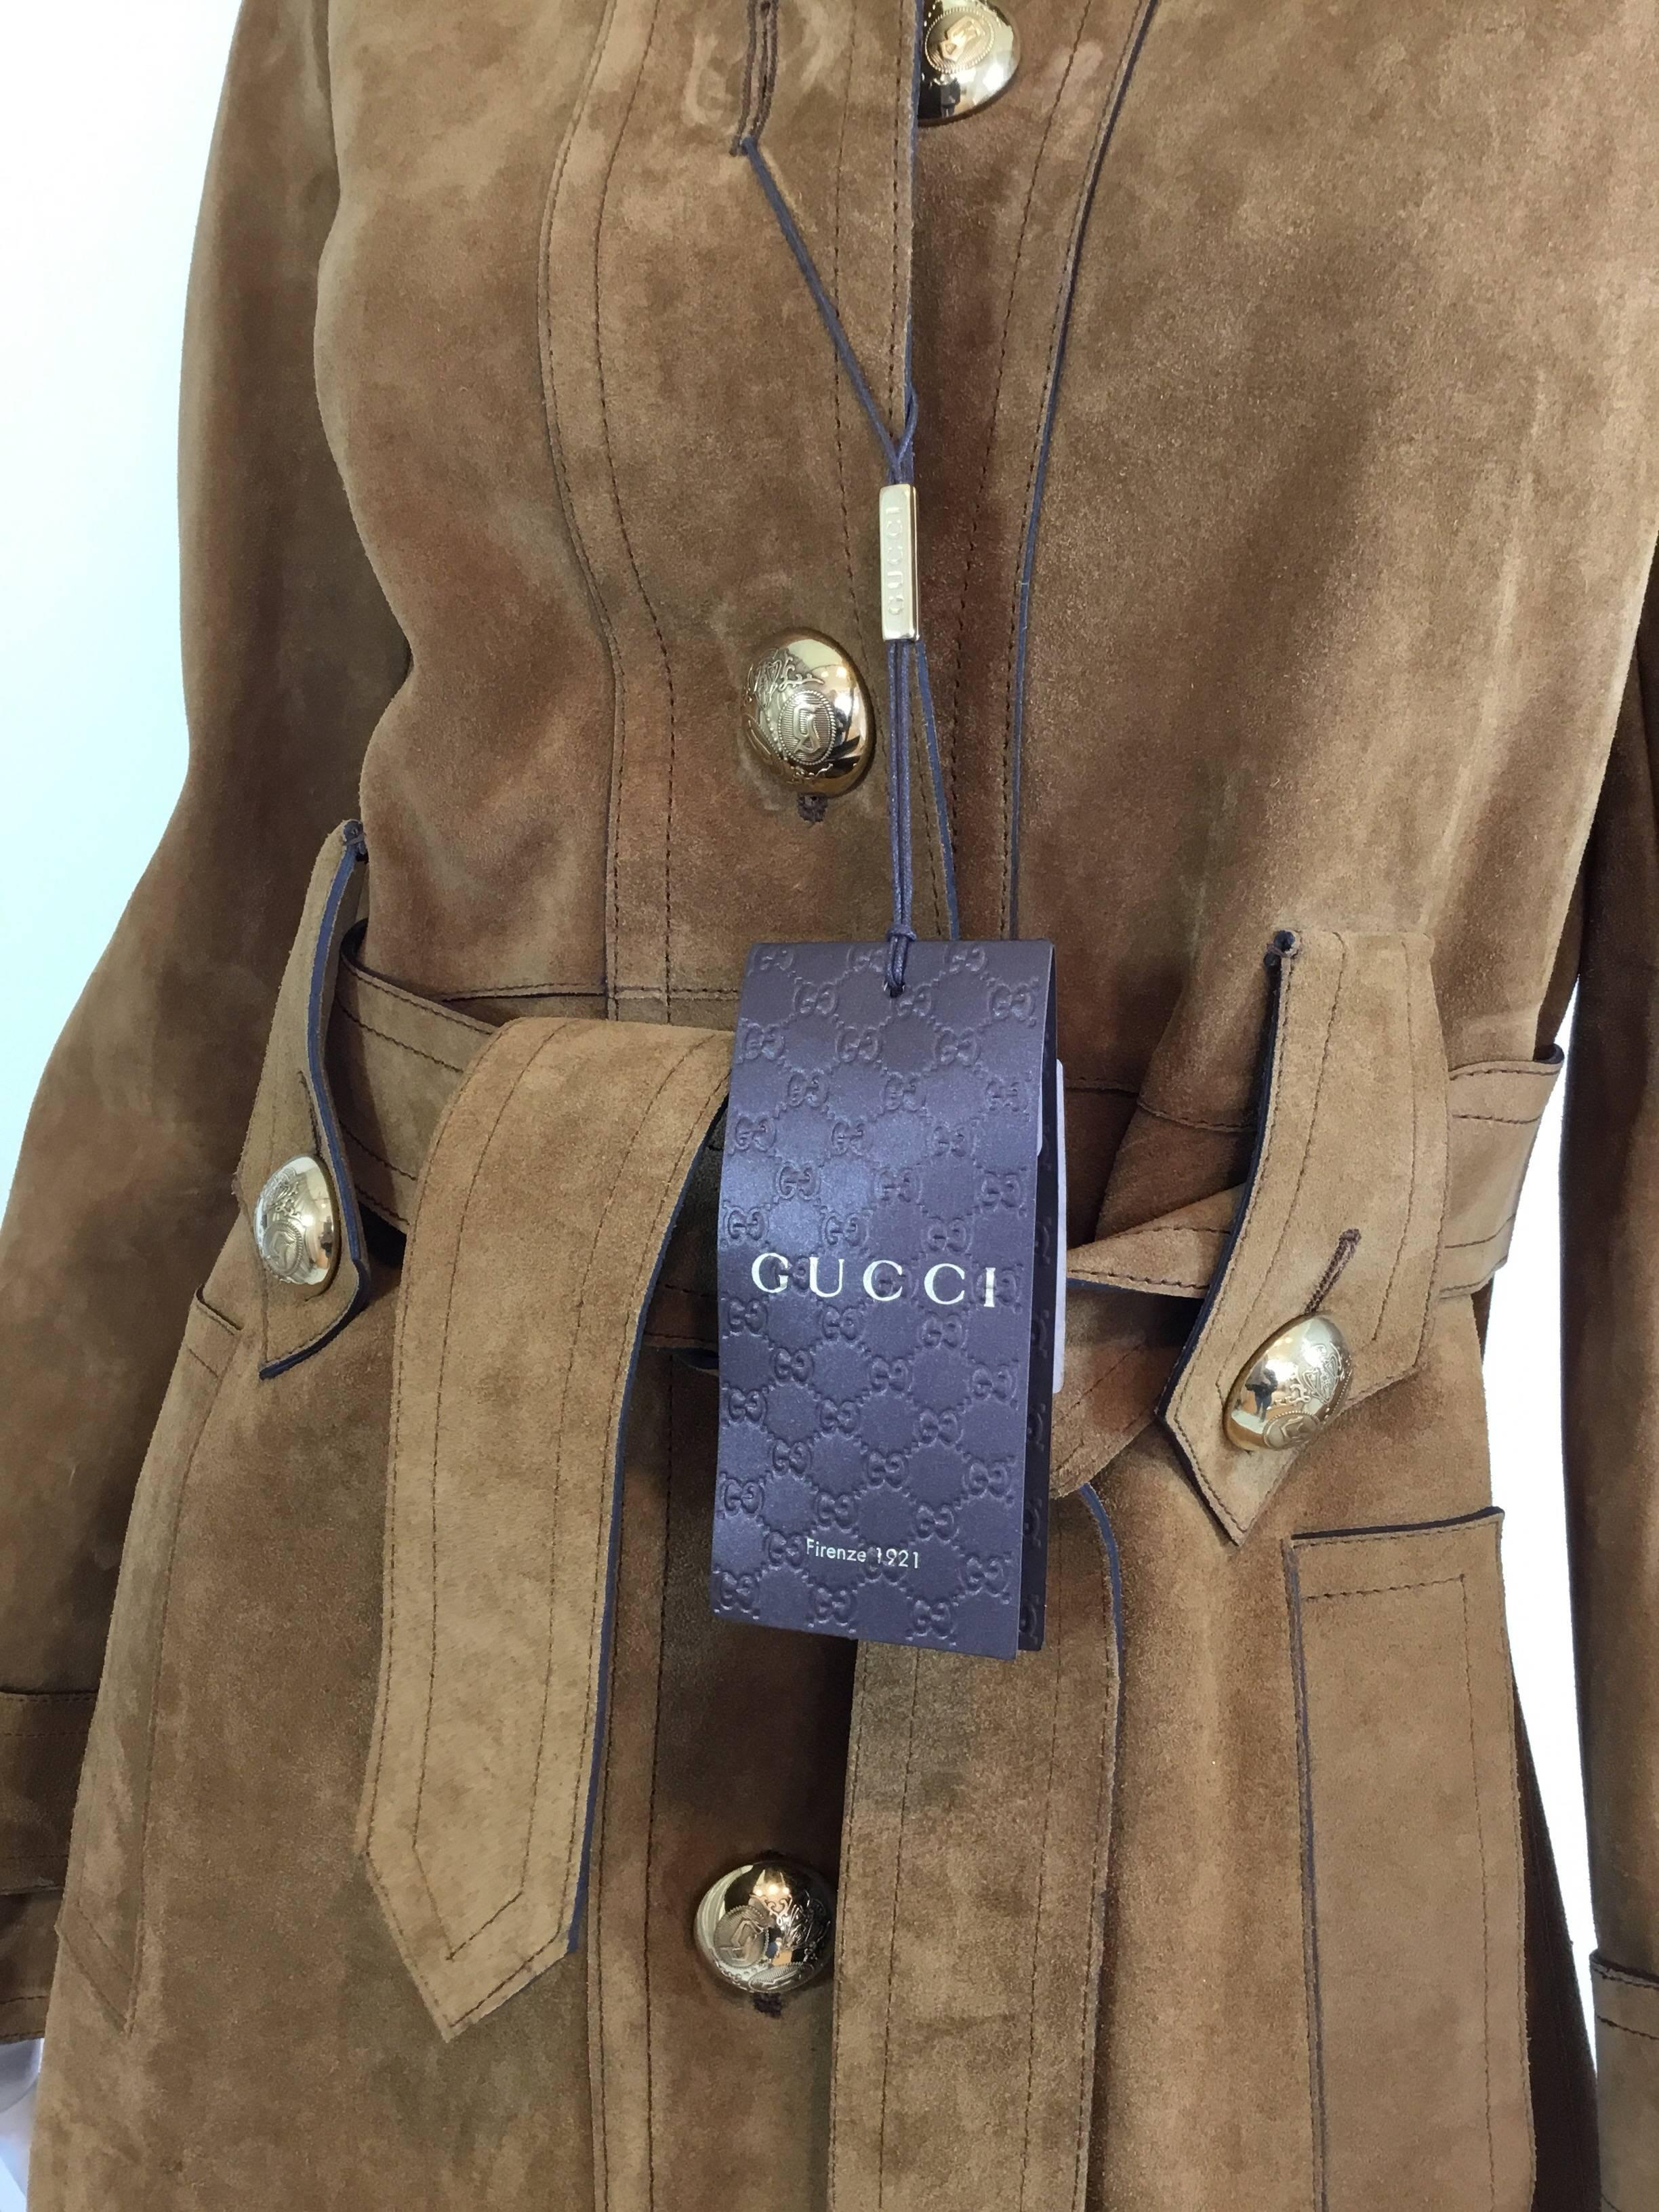 64348a041 Gucci Suede Leather Belted Coat, Winter 2015 at 1stdibs